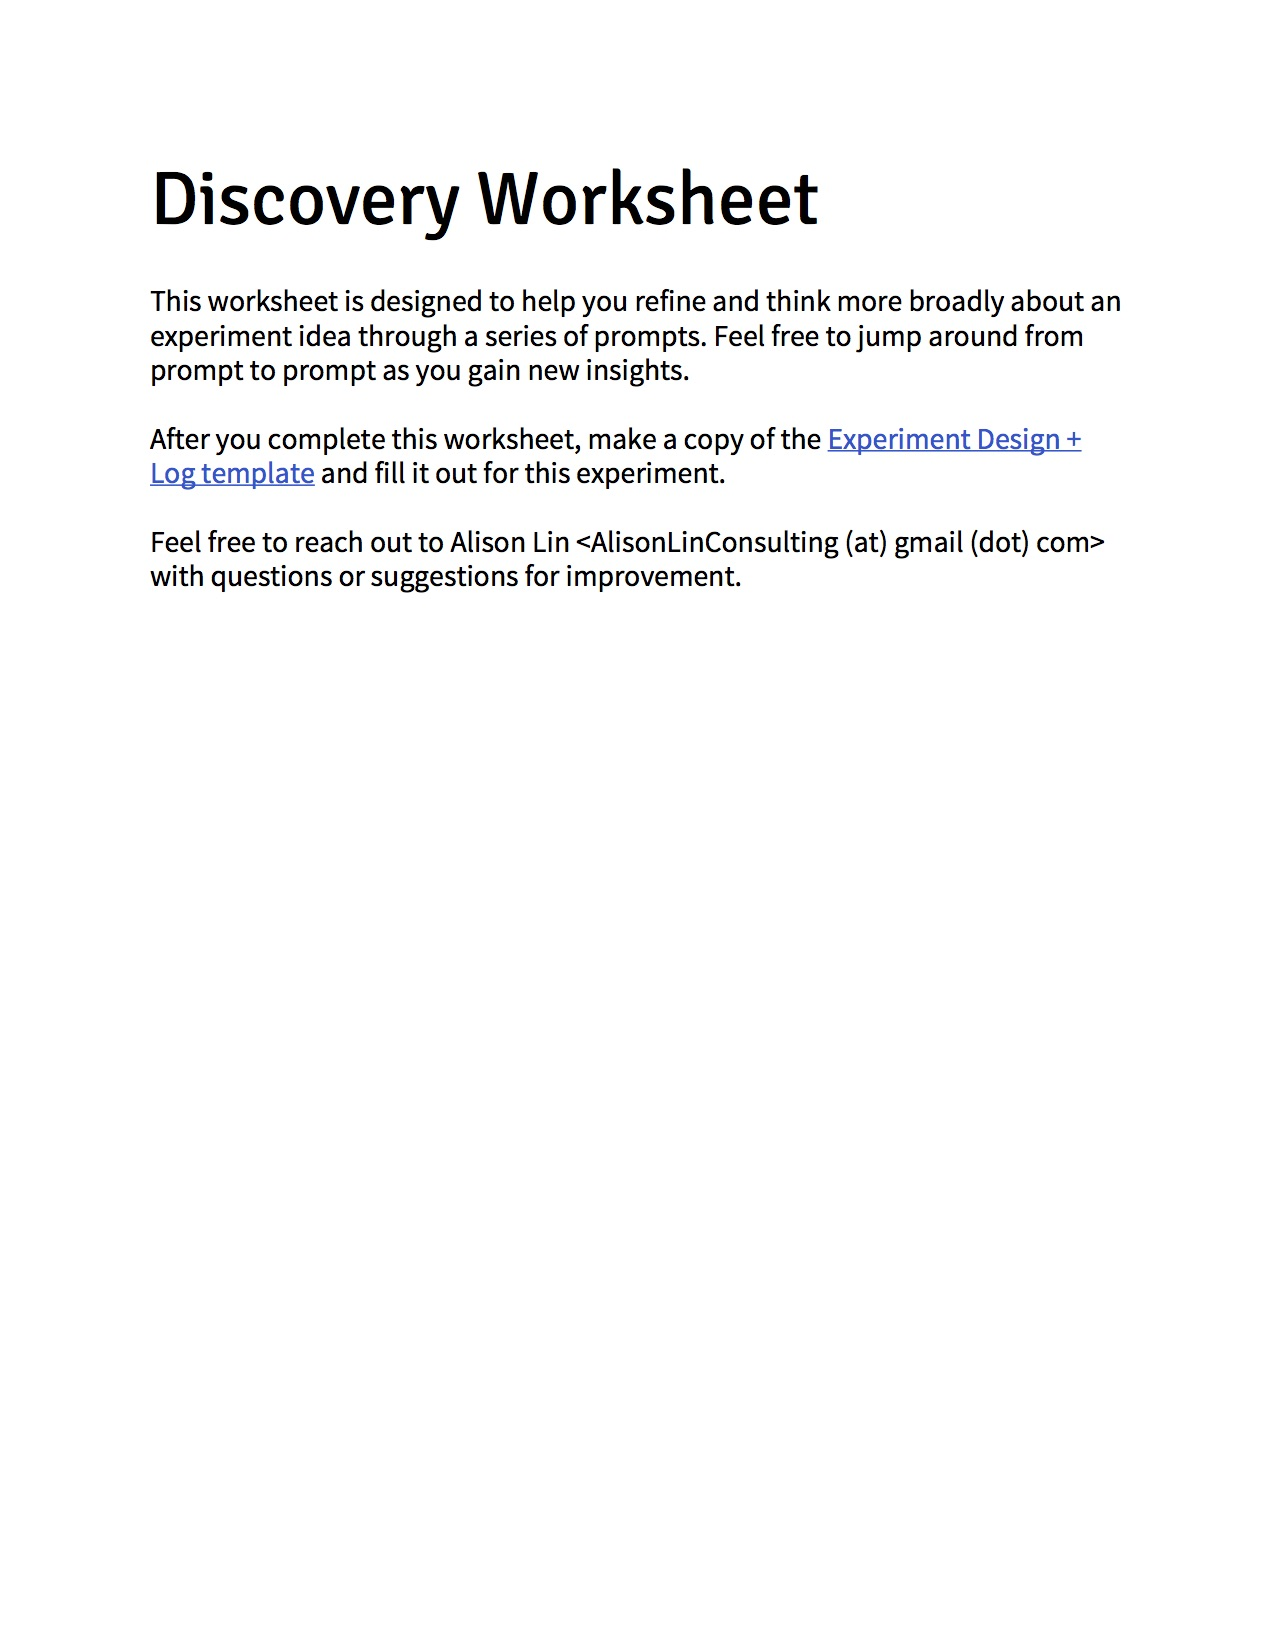 Experimentation Template: Discovery